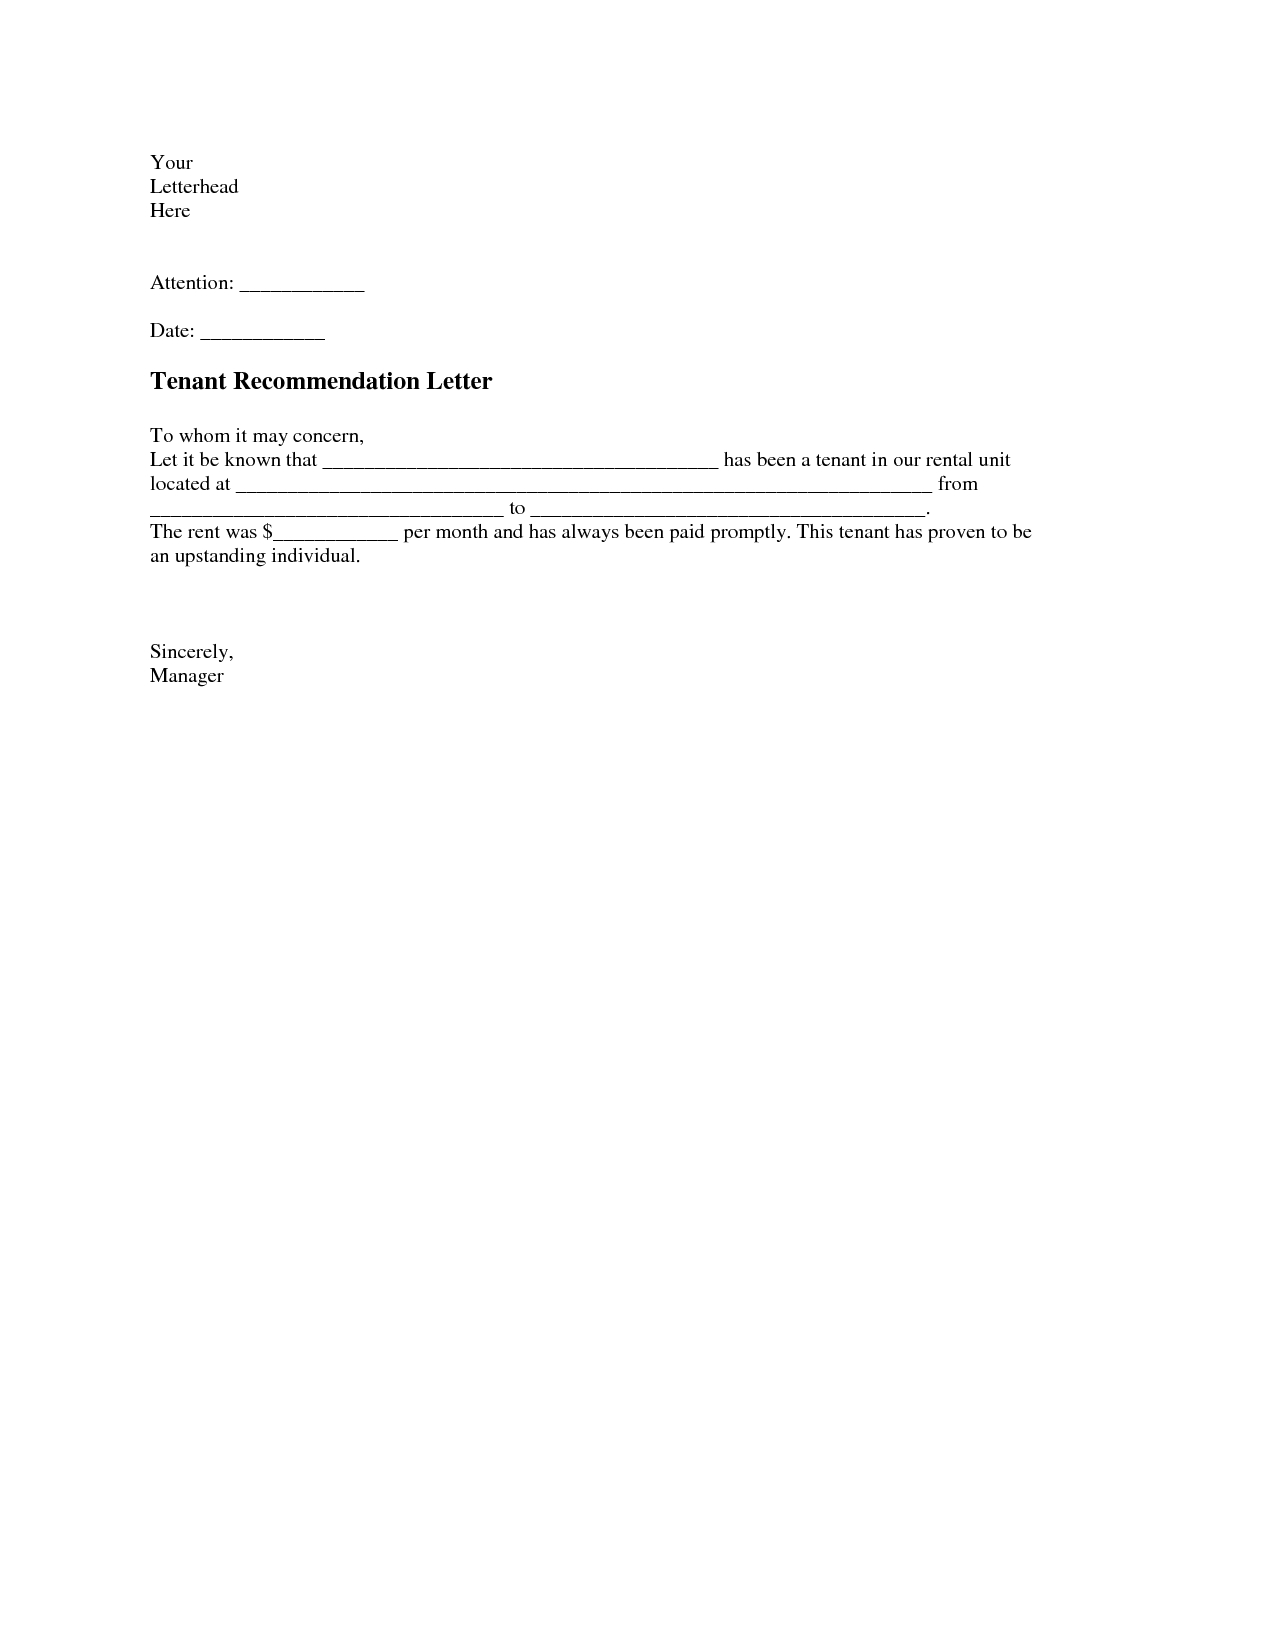 Vacation Rental Welcome Letter Template - Tenant Re Mendation Letter A Tenant Re Mendation Letter is